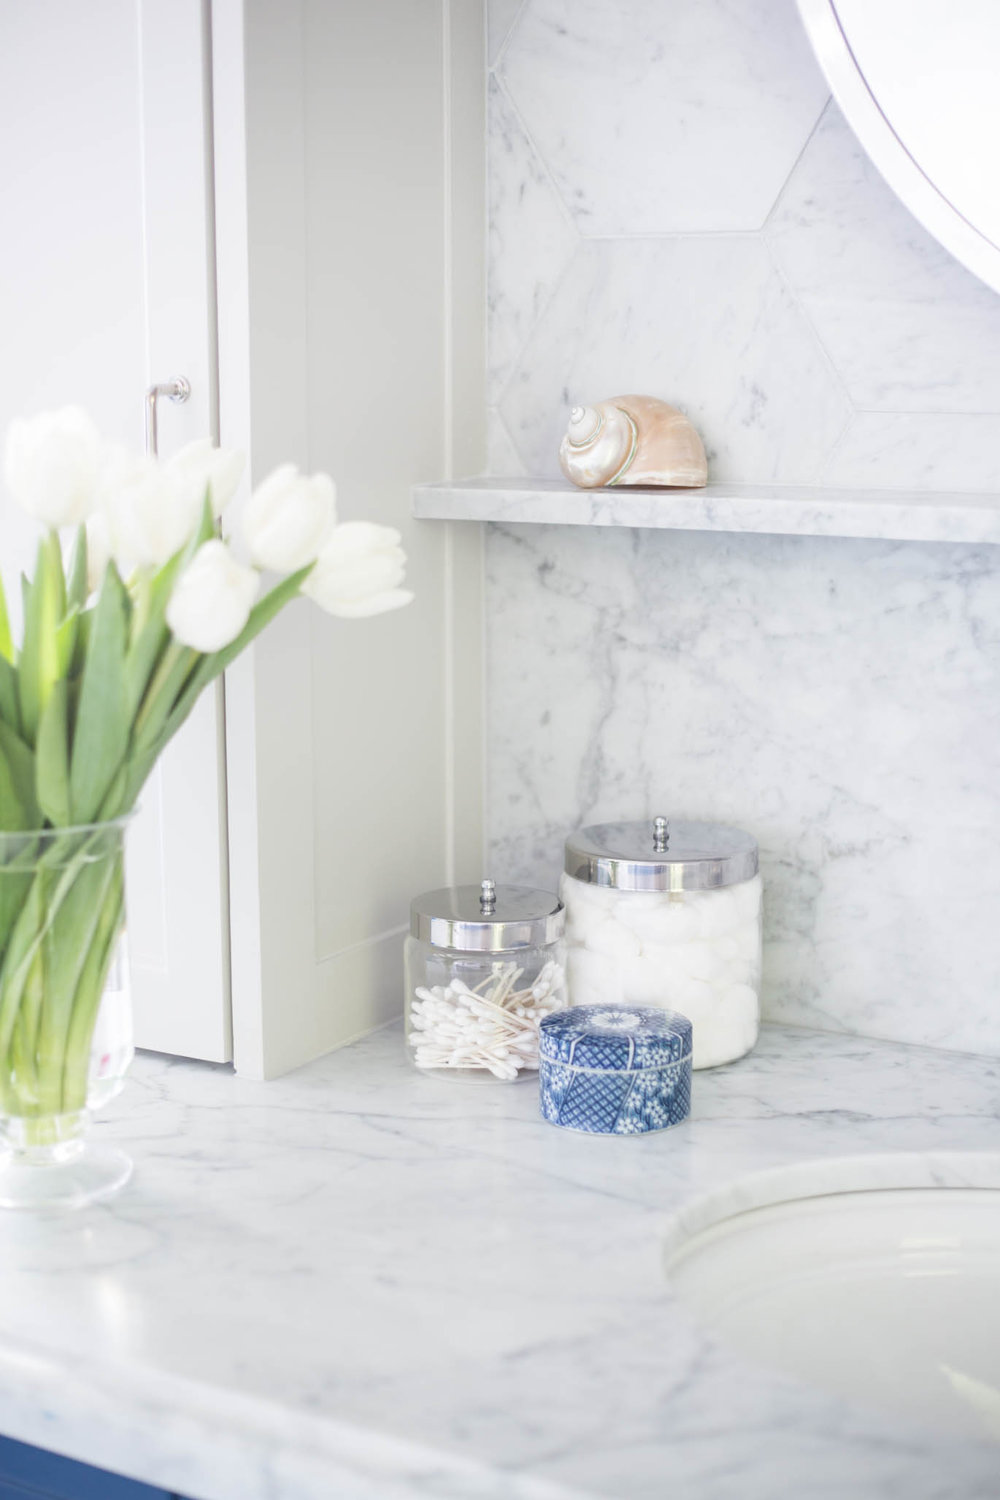 Marble ledge at bathroom sink | Carla Aston, Designer | Tori Aston, Photographer  #bathroomremodel #marblebathroom #hextile